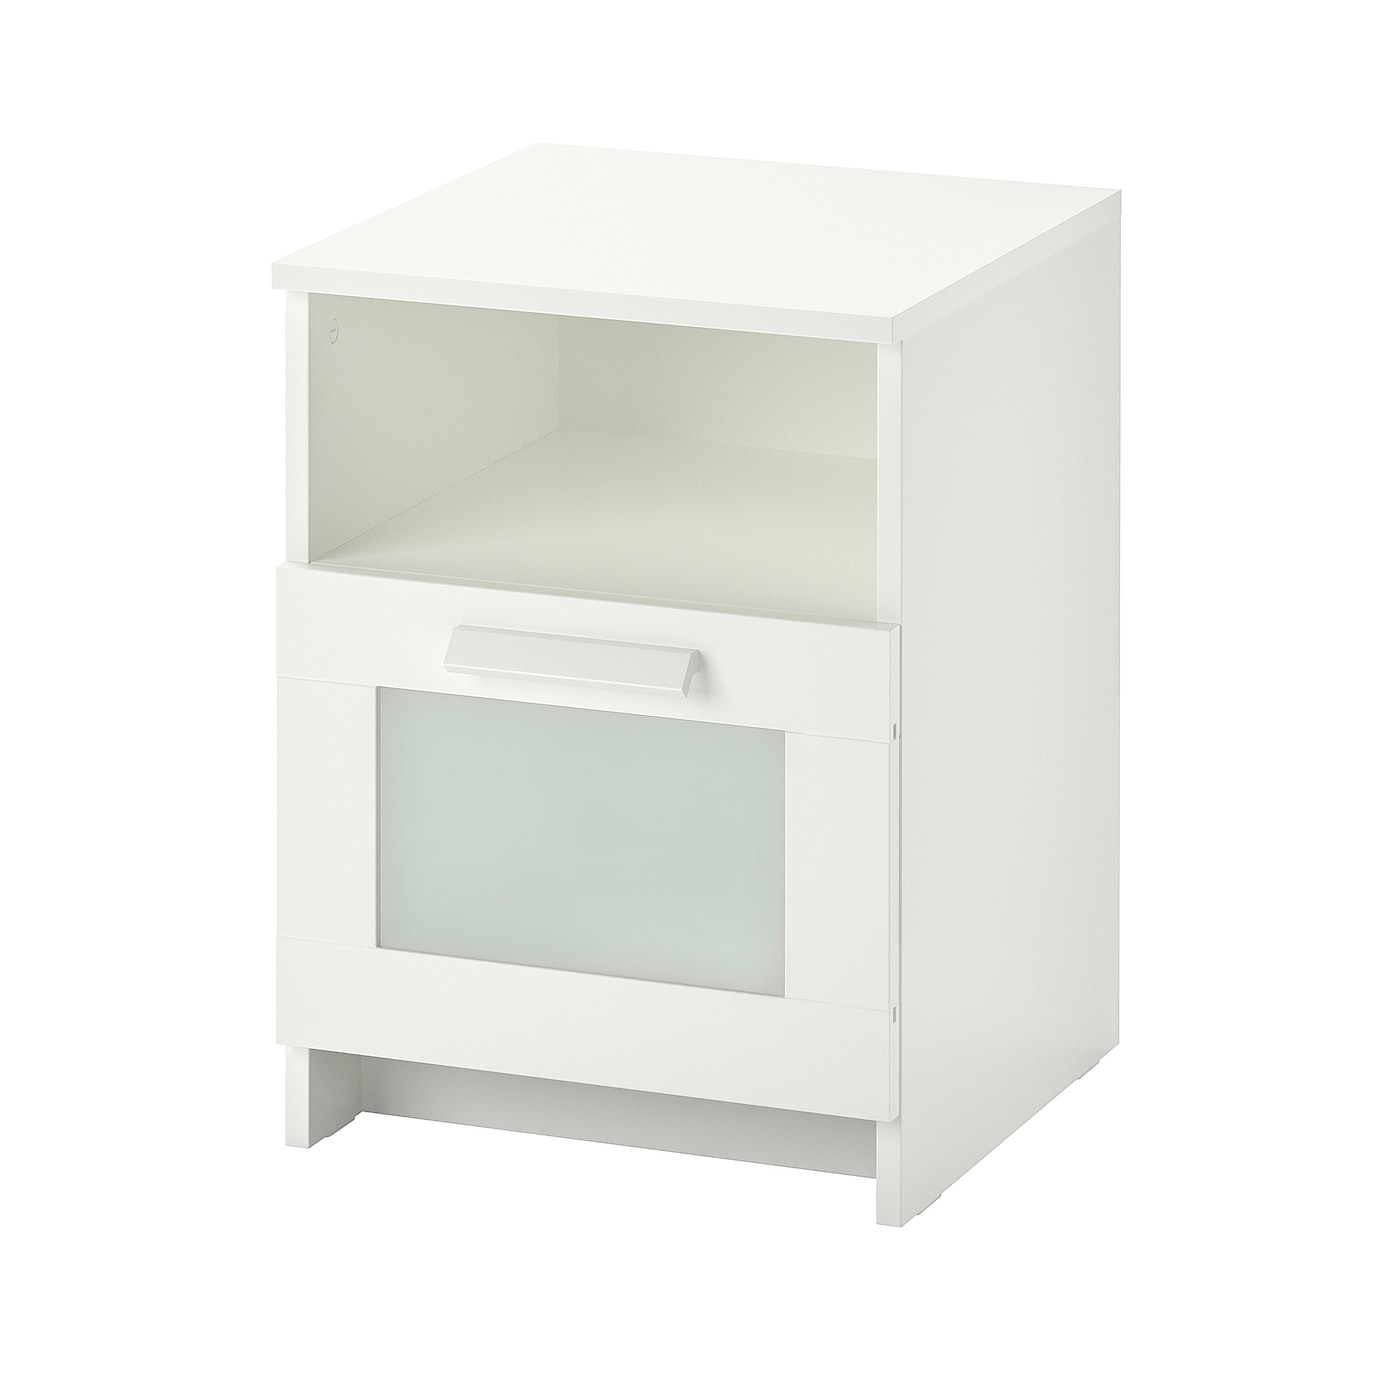 IKEA BRIMNES bedside table In the drawer there is room for an extension socket for your chargers.